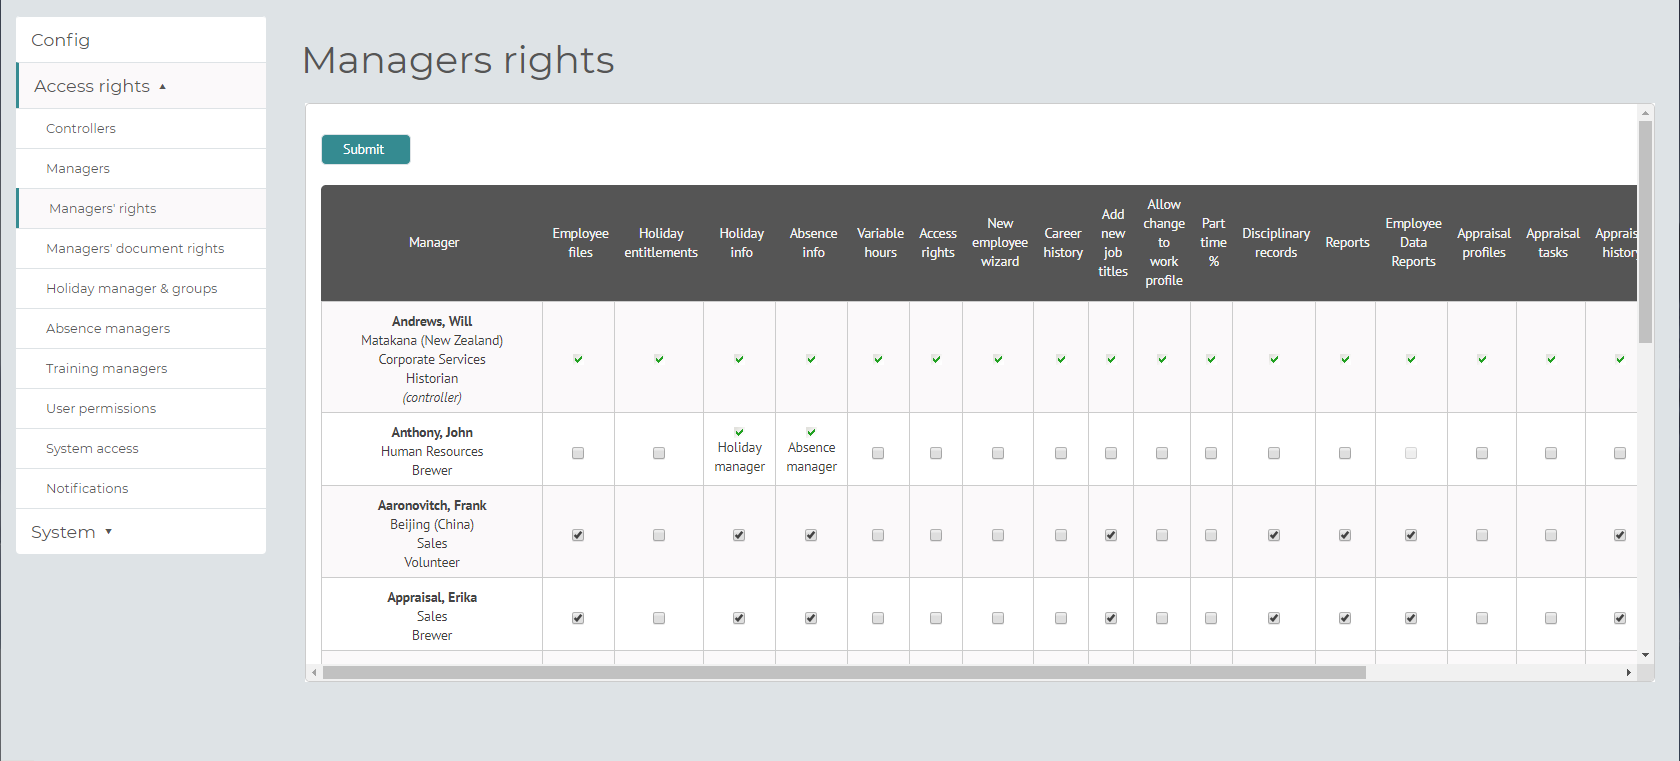 myhrtoolkit config managers' rights